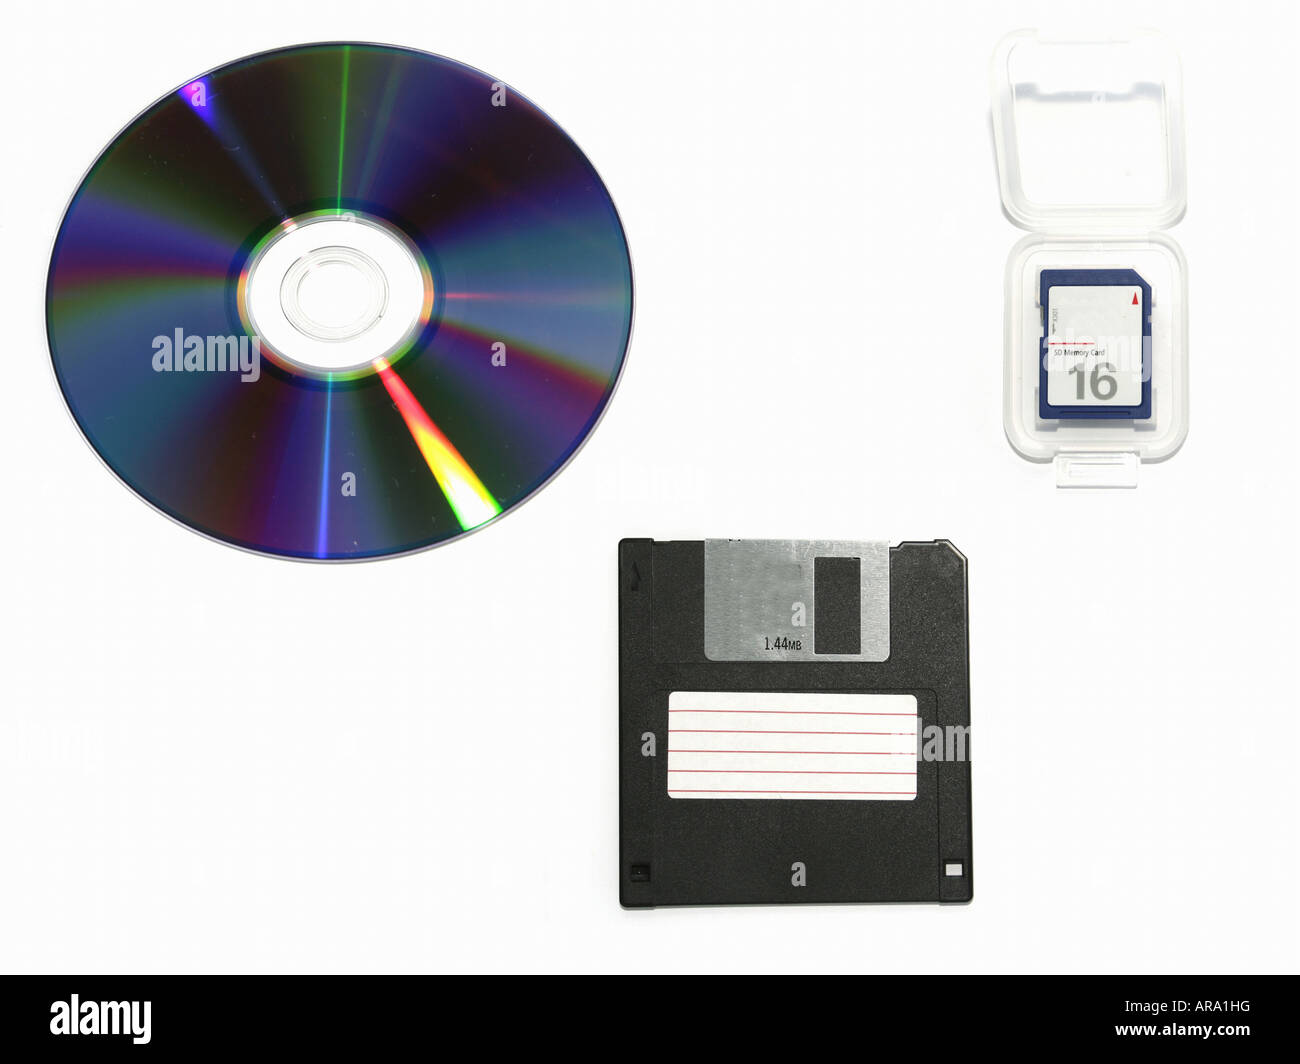 Pc Components Cd Rom Floppy Disk Memory Stock Photo